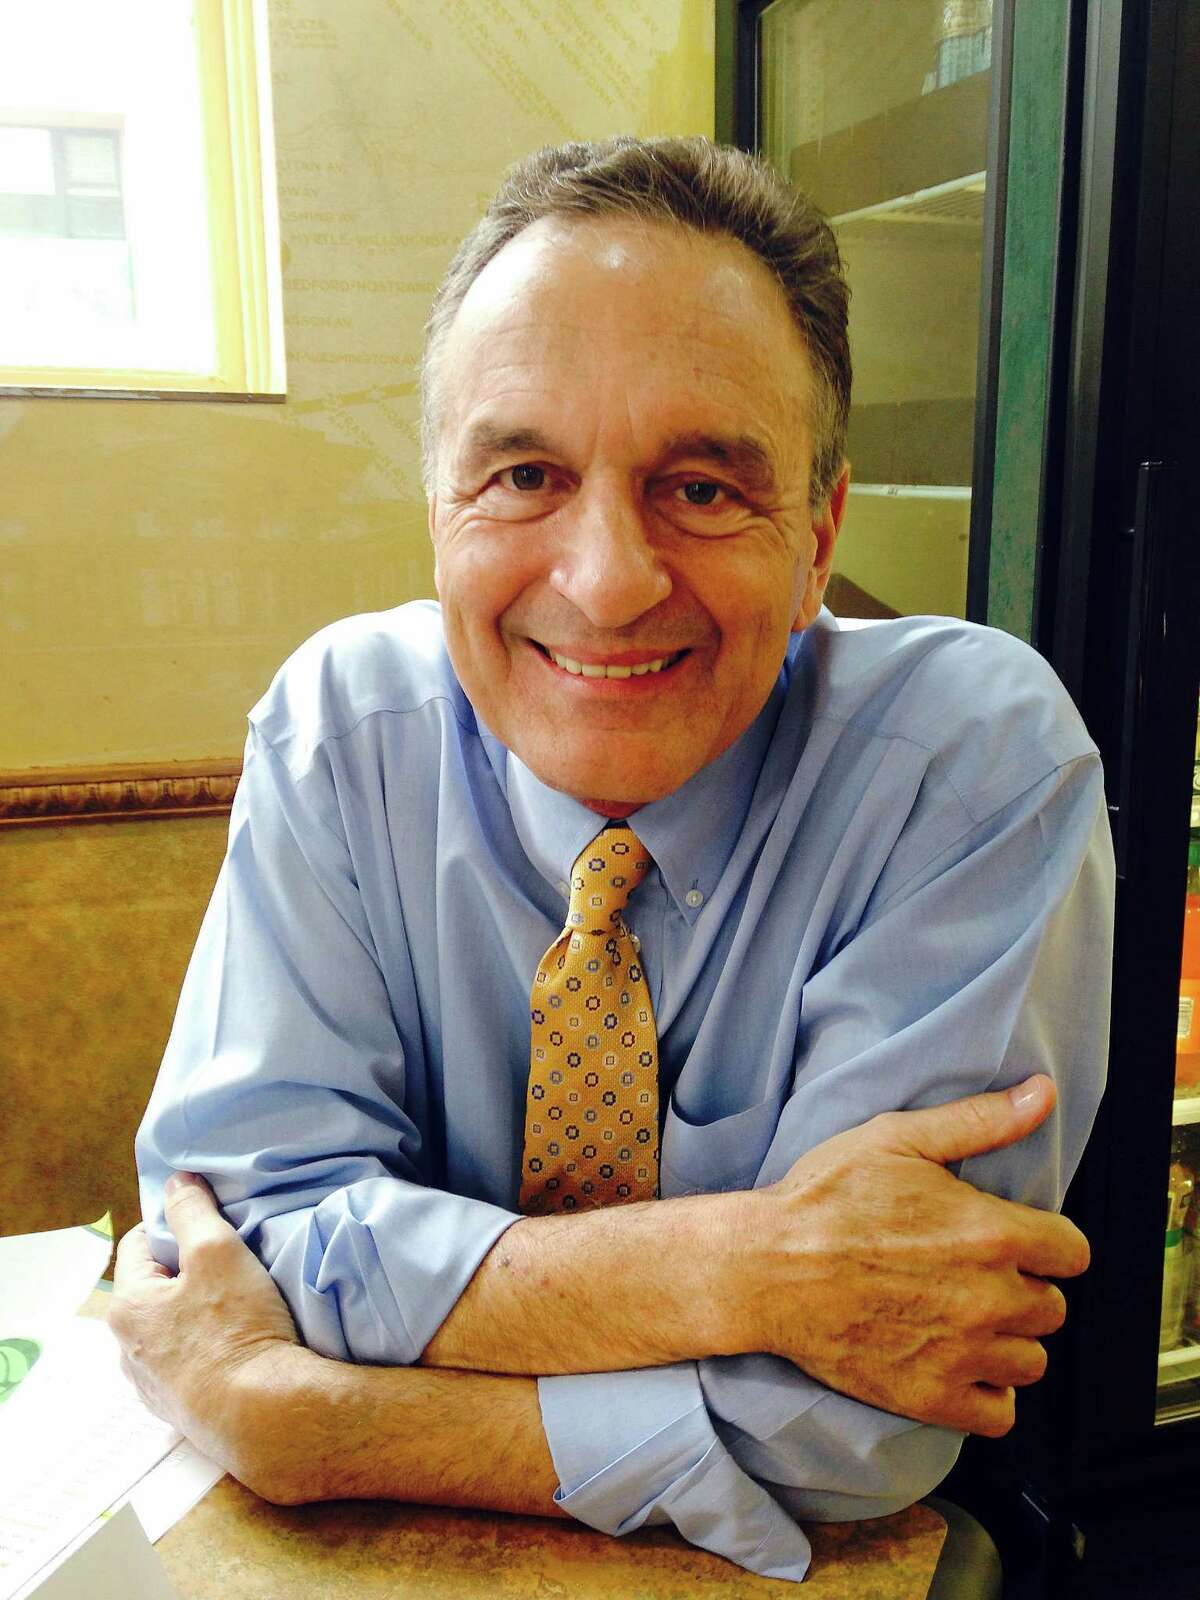 In this May 16, 2014 photo, Subway co-founder Fred DeLuca poses for a photo at a Subway restaurant in New York.